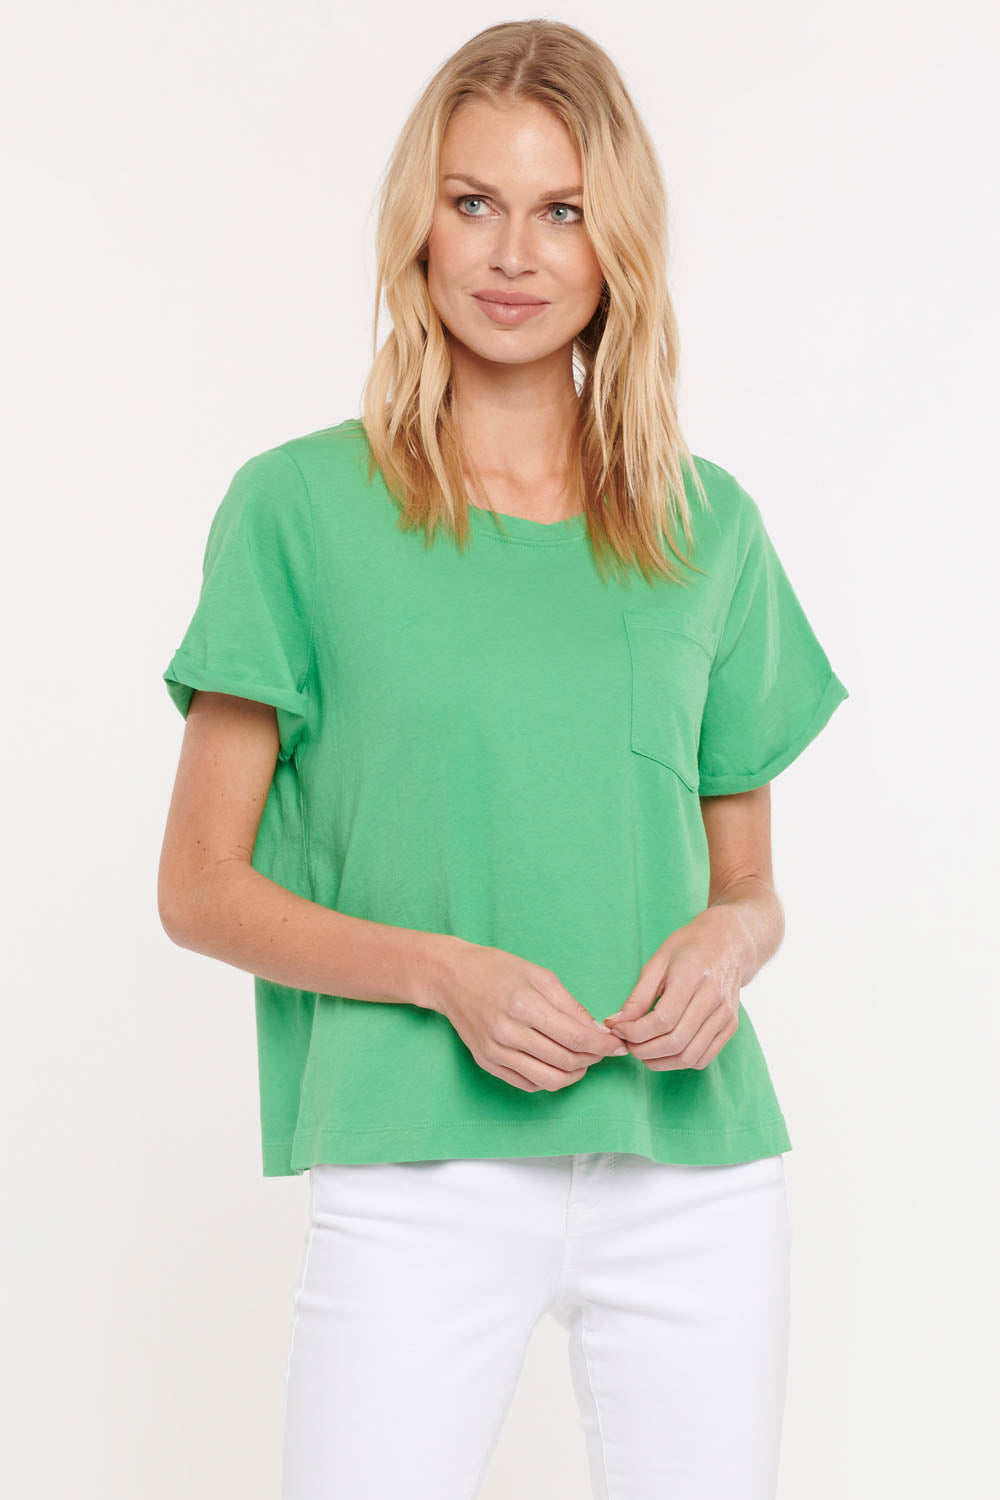 Cuffed Crewneck Pocket Tee - Clover